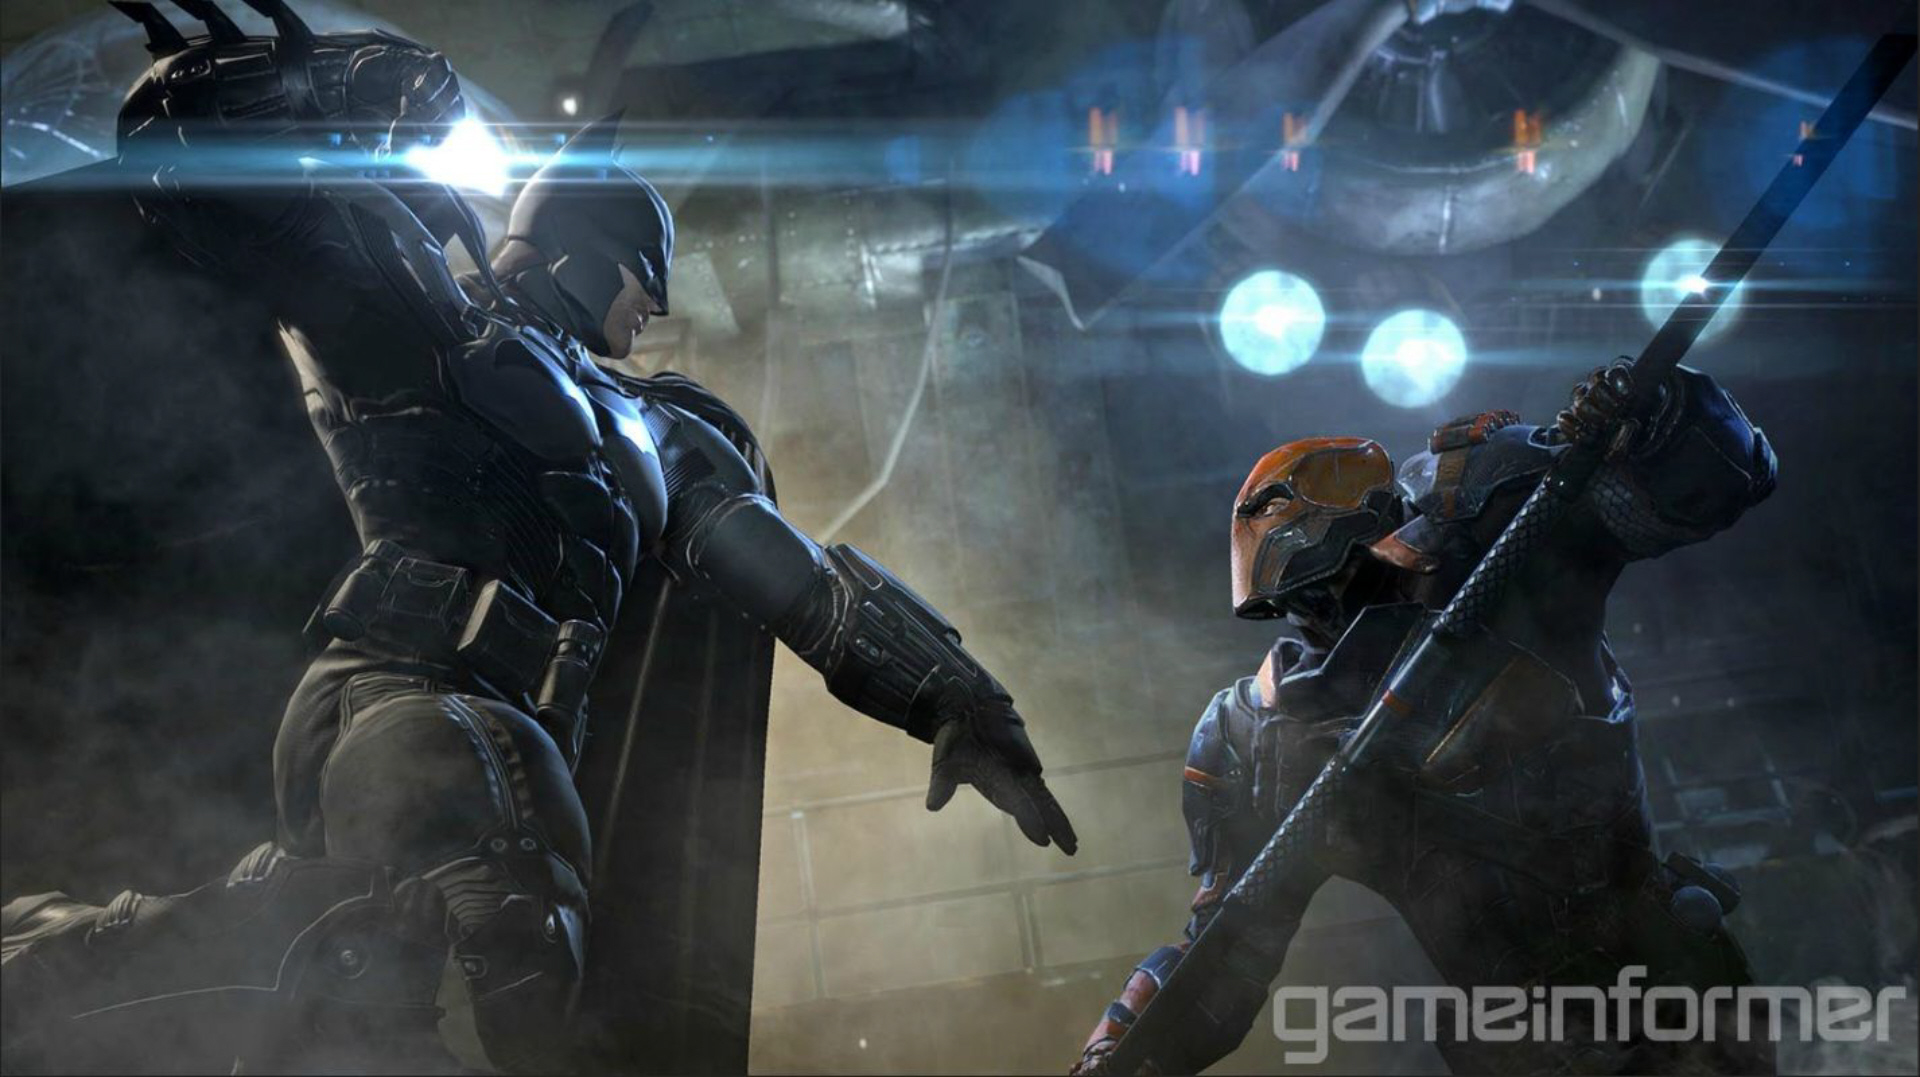 batman-arkham-origins-gameplay-screenshot